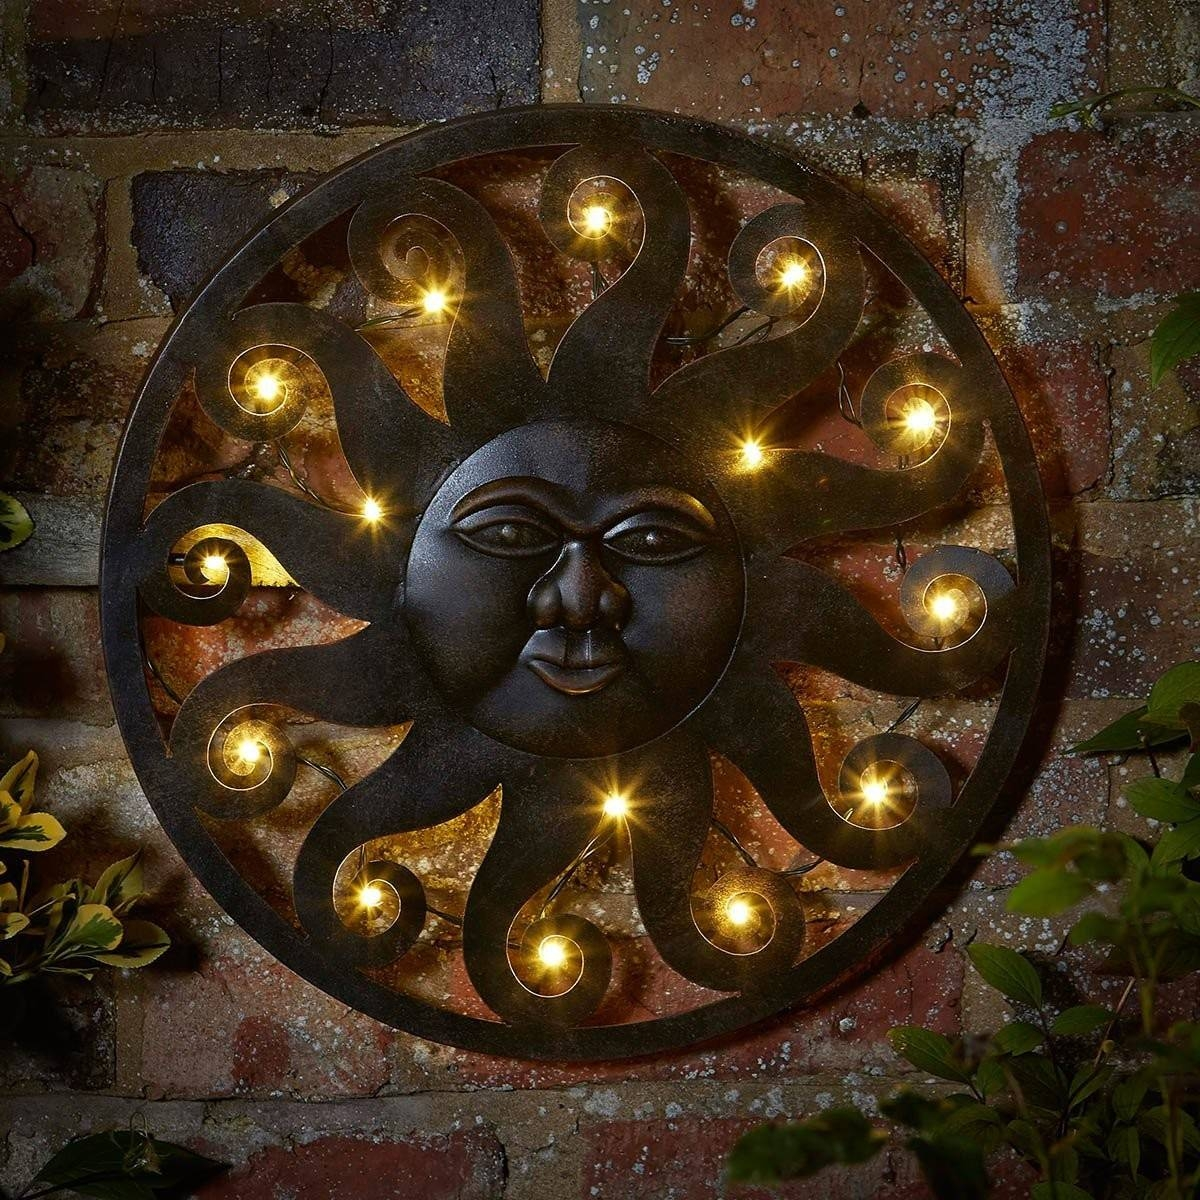 Chic Outdoor Metal Sun Wall Art Decor Large Copper Patina Sun Intended For Most Current Copper Outdoor Wall Art (View 11 of 13)